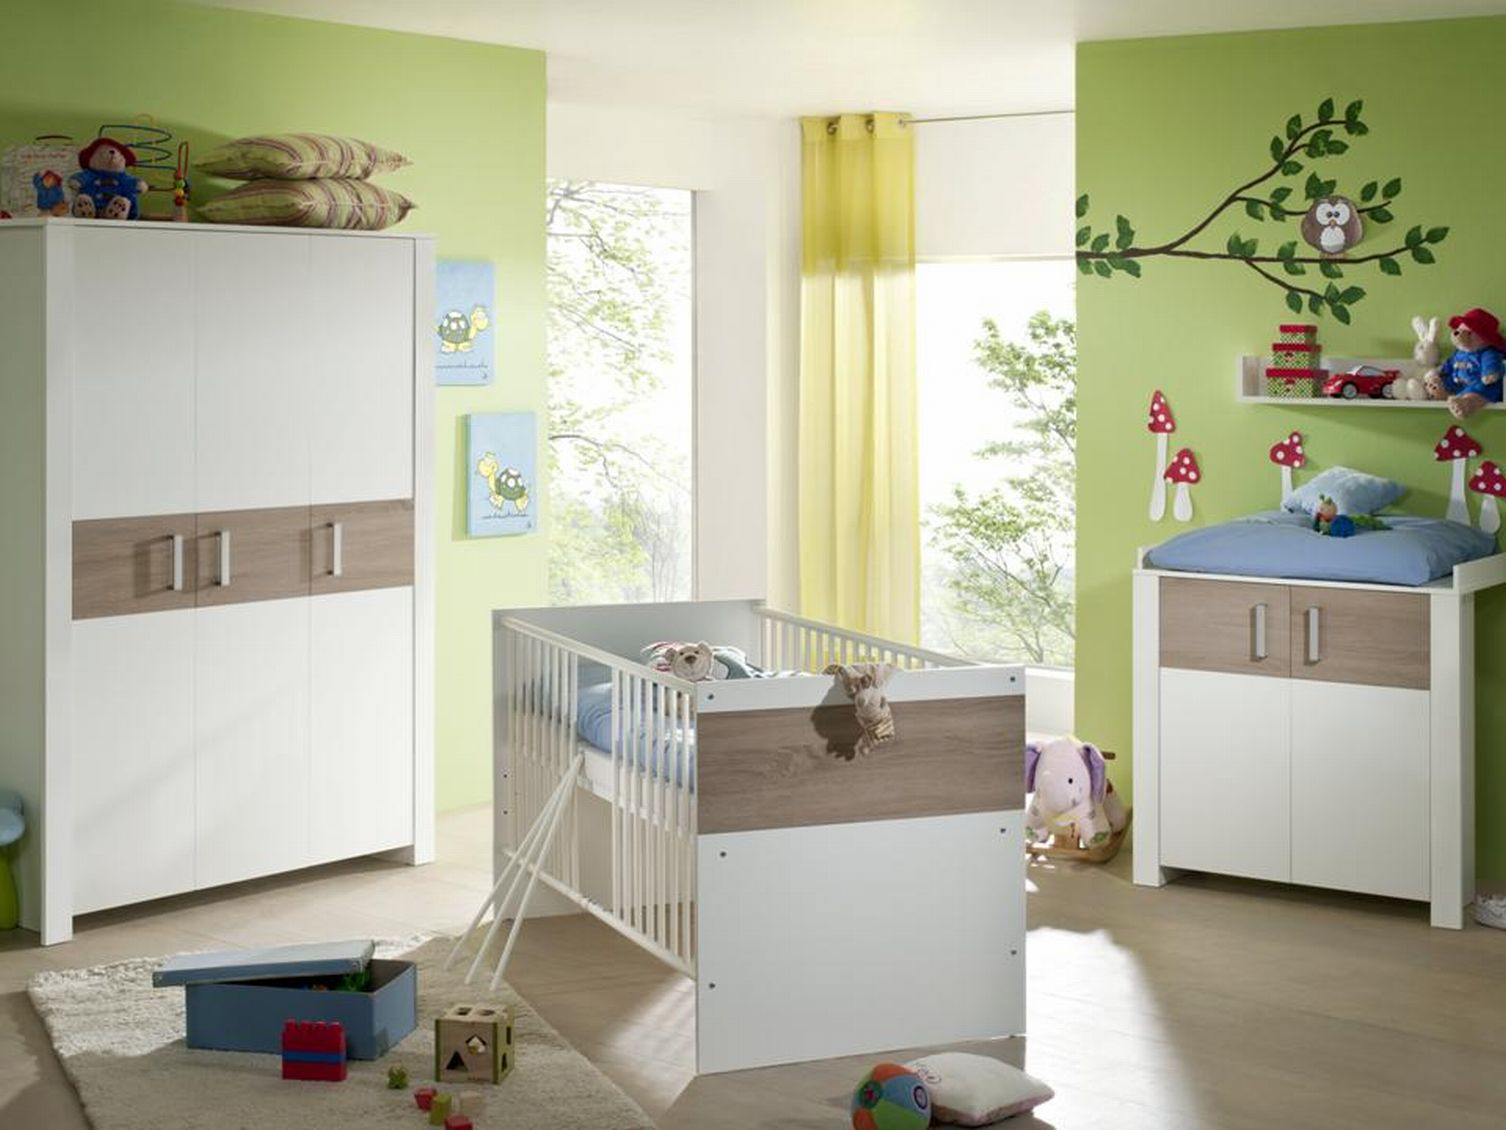 babyzimmerset kinderzimmer zwillingszimmer zwillinge neu baby zwillingsbetten ebay. Black Bedroom Furniture Sets. Home Design Ideas